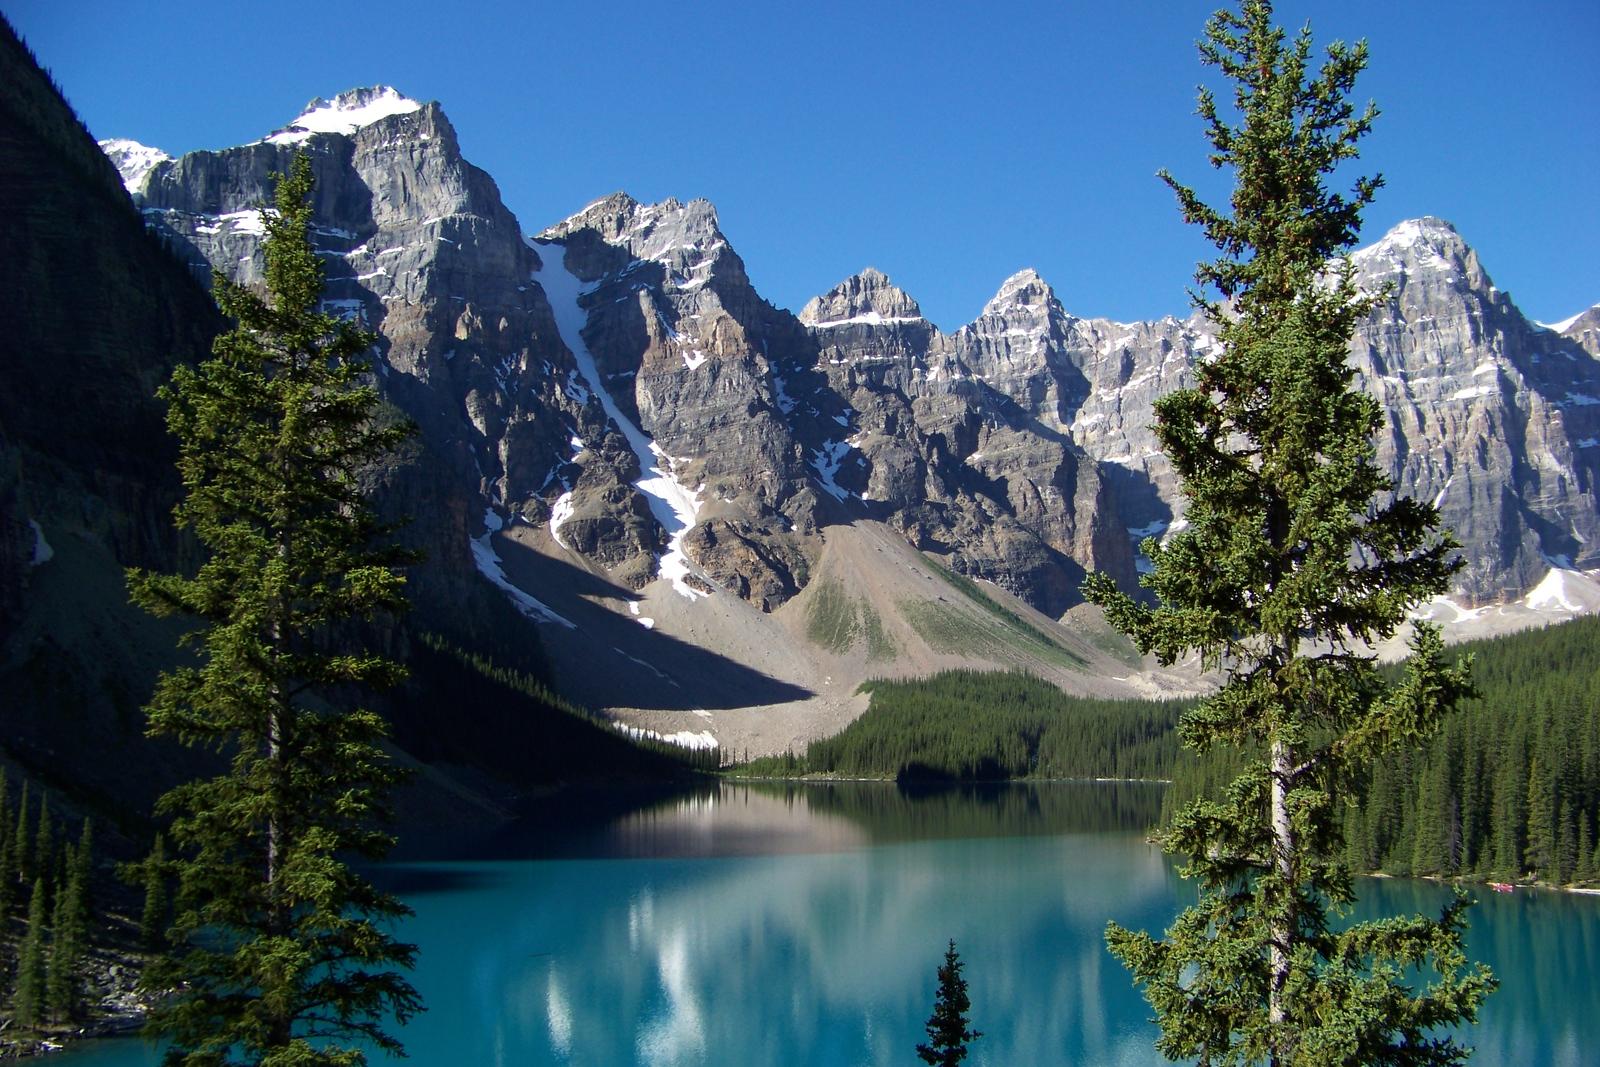 Magnificent view of Moraine Lake and the peaks surrounding it.